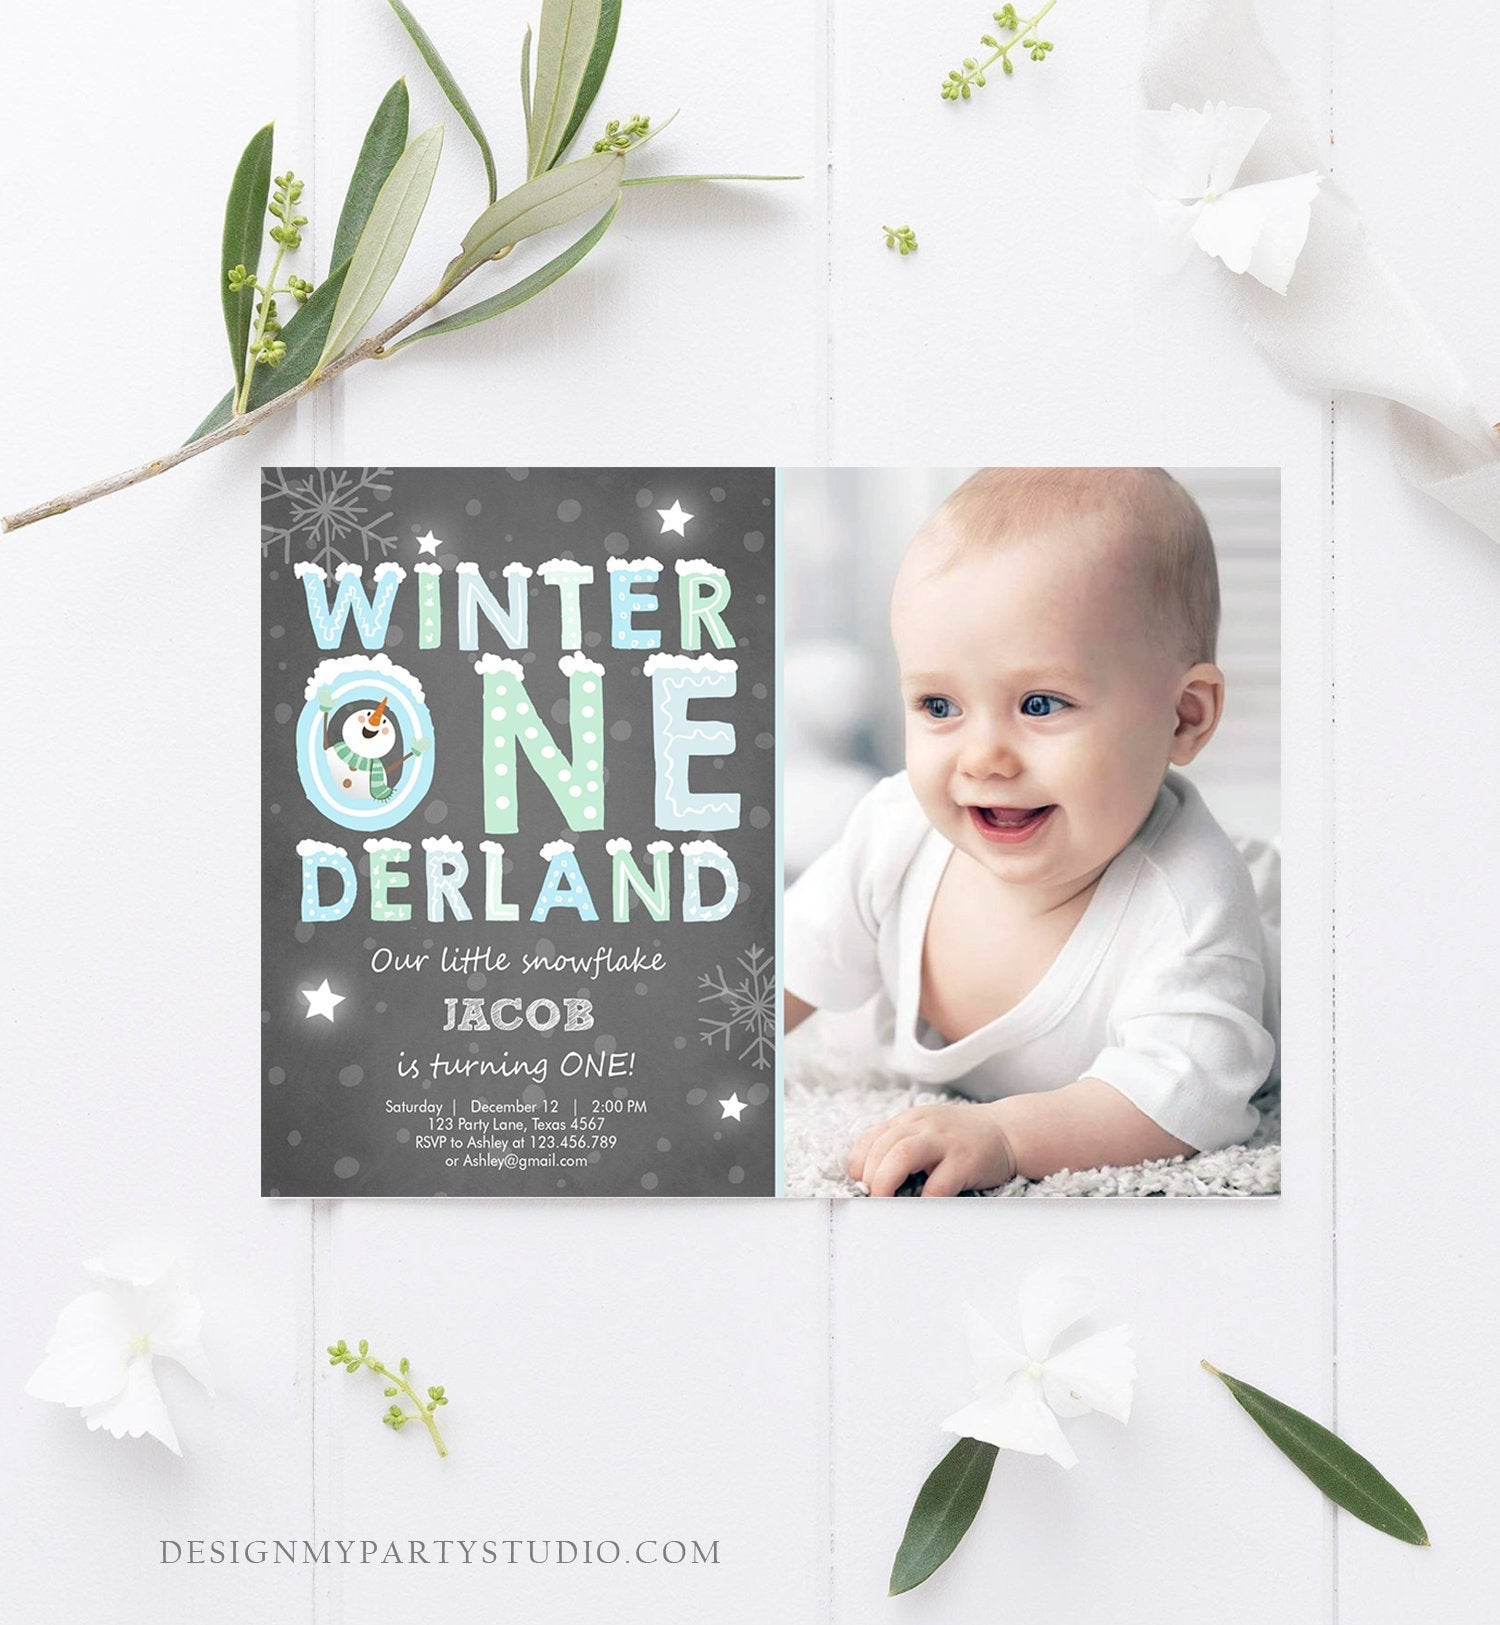 Editable Winter ONEderland Birthday Invitation First Birthday Snowman Boy Blue Download Printable Invitation Template Digital Corjl 0075